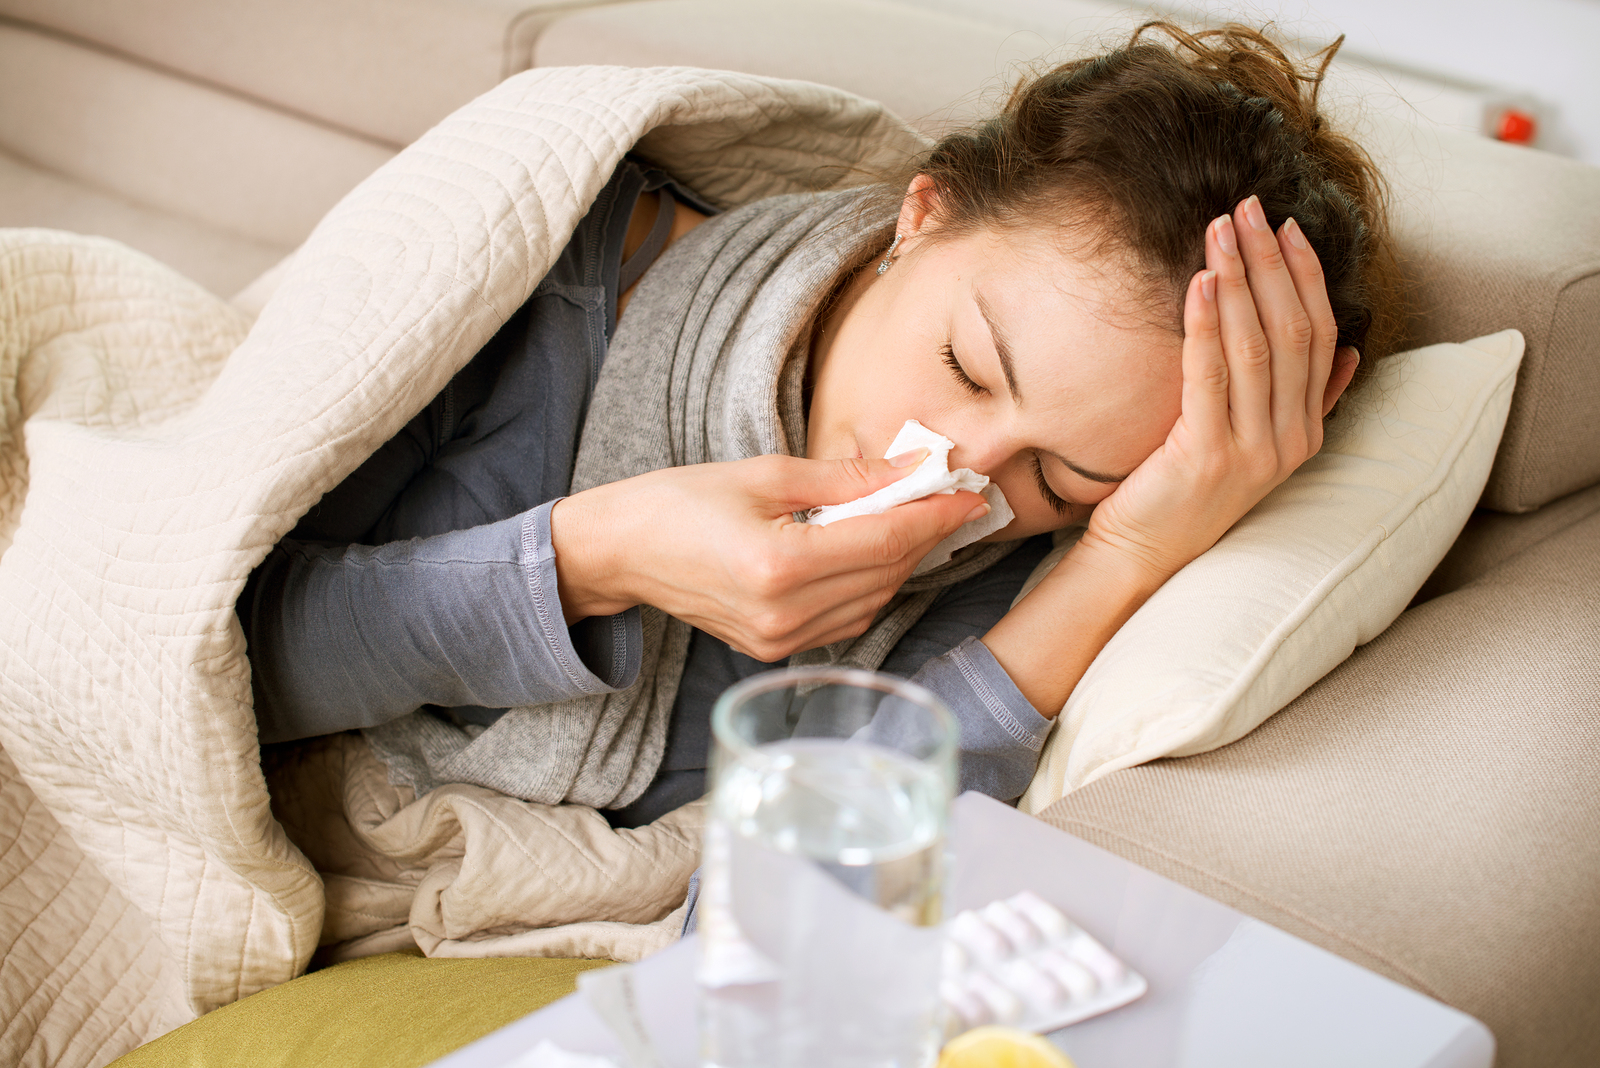 bigstock-Sick-Woman-Flu-Woman-Caught-Co-39028732